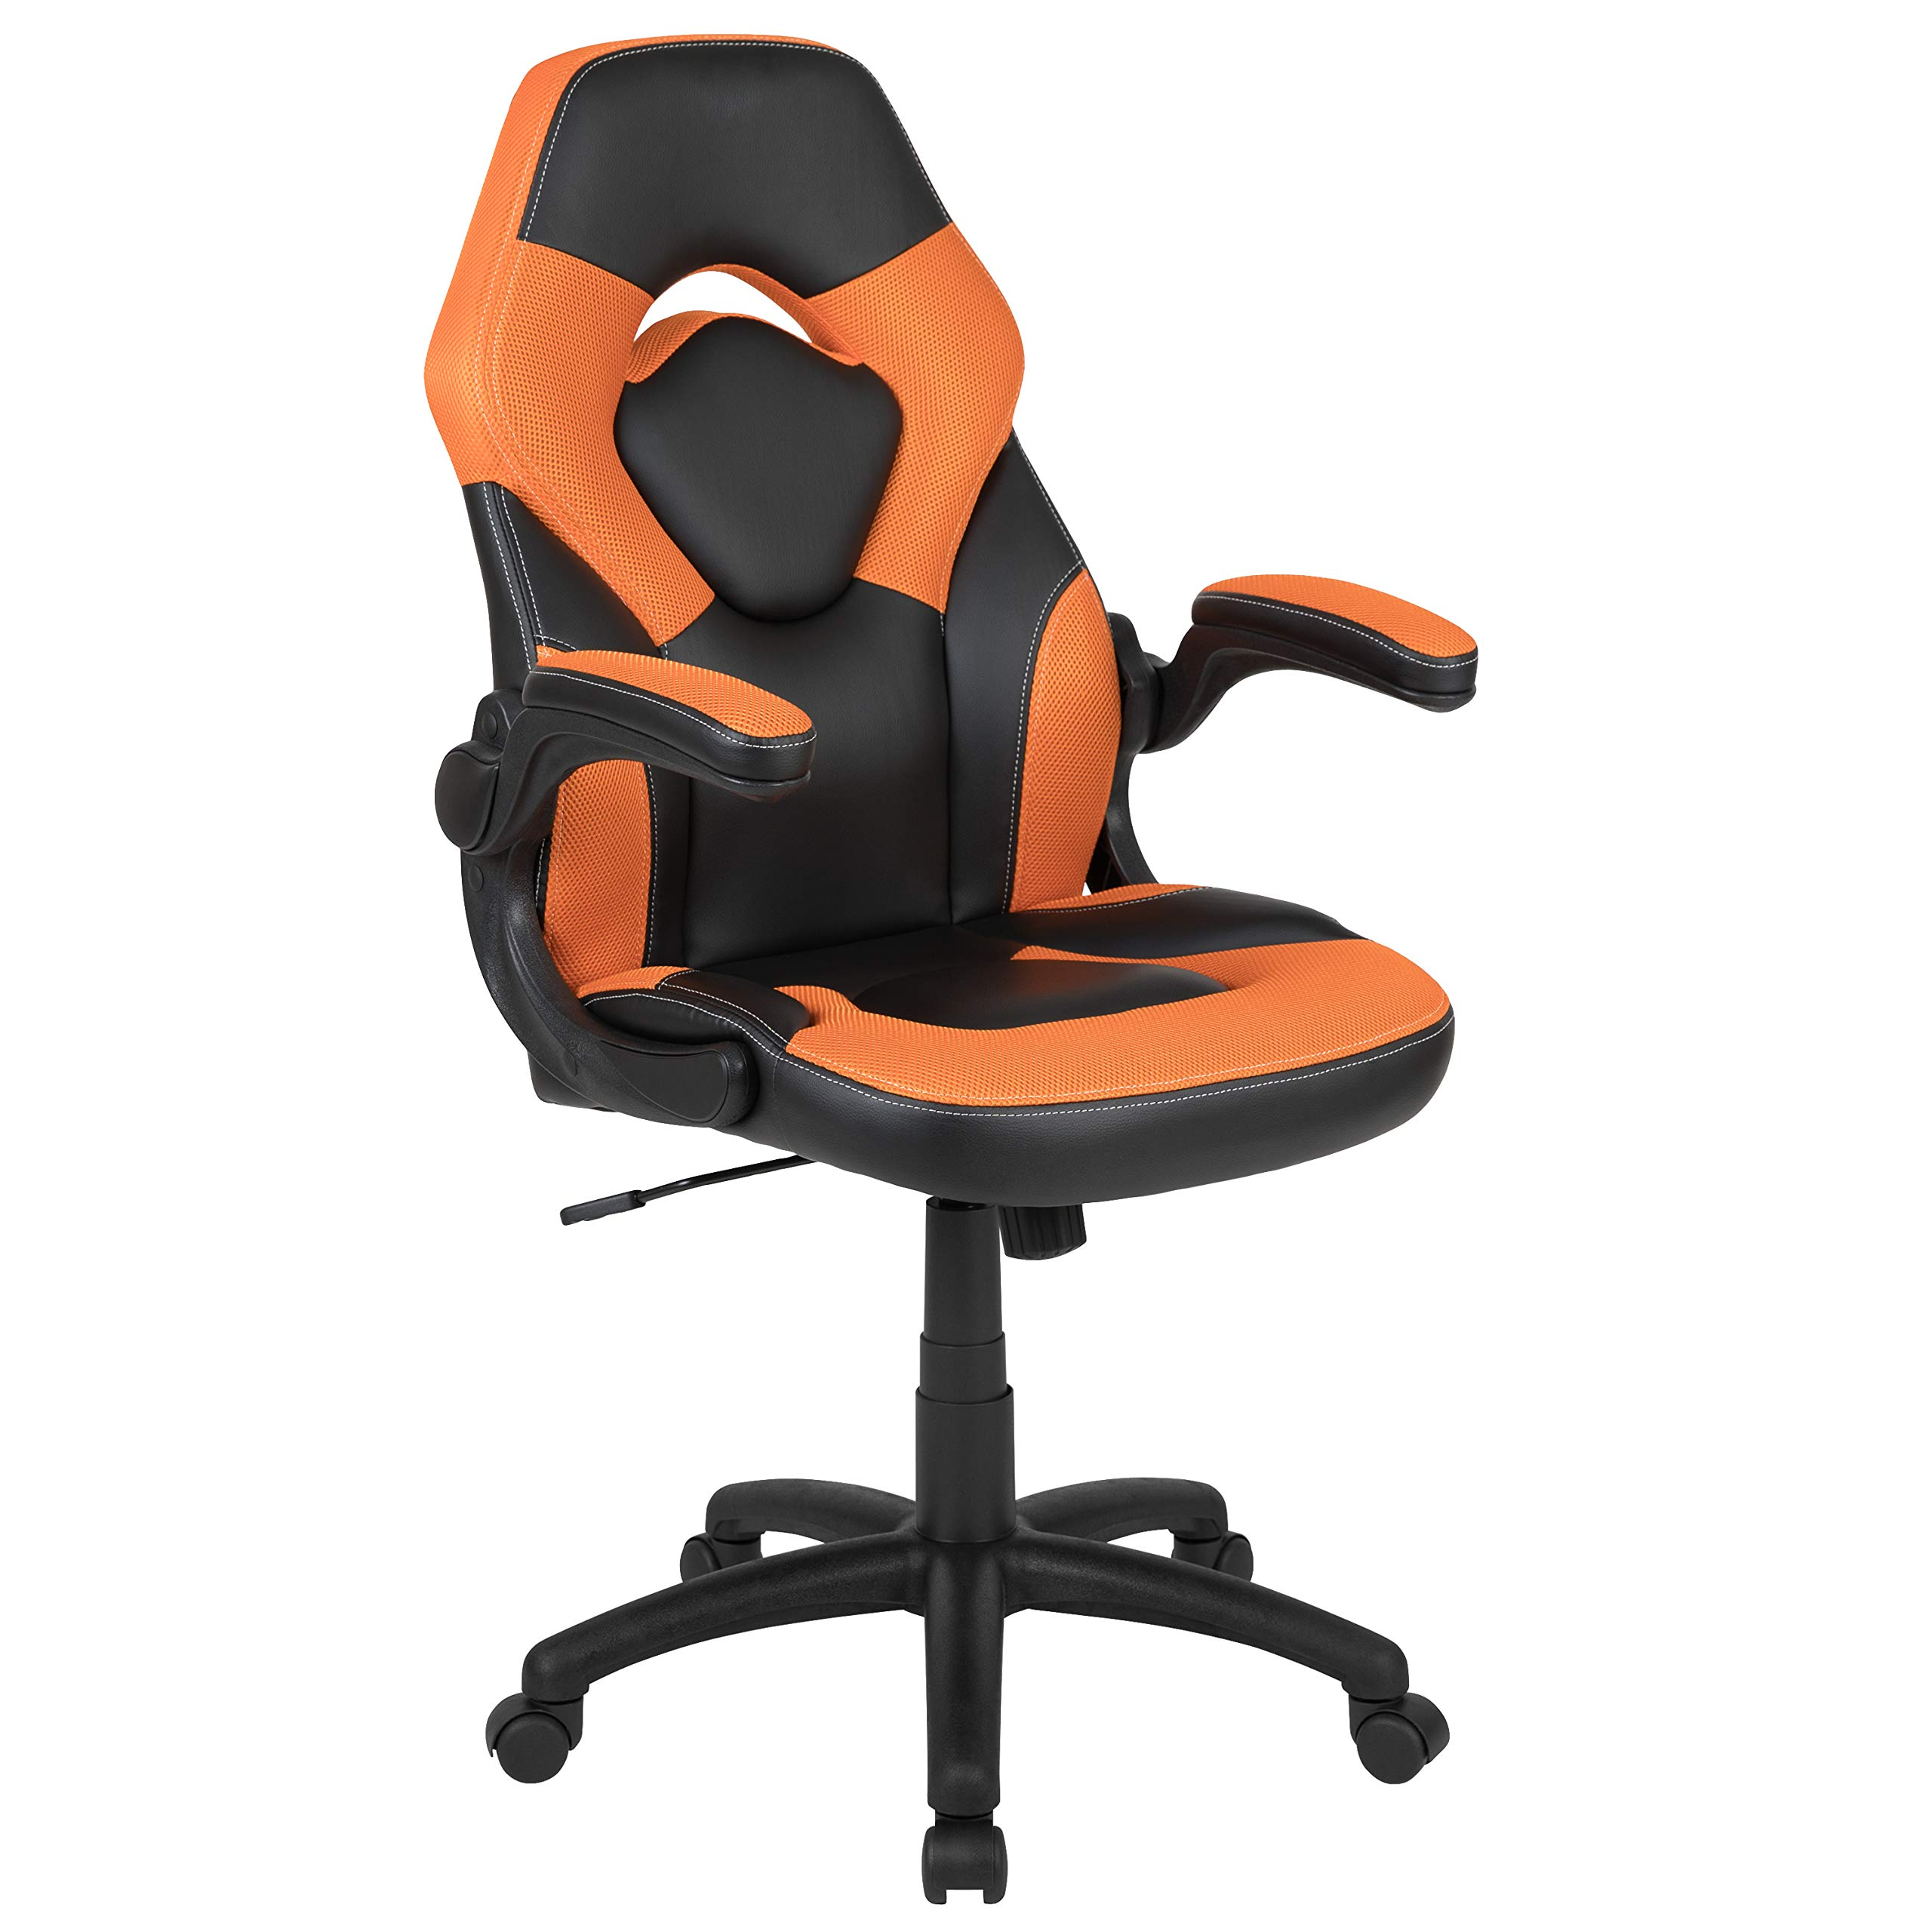 Flash Furniture X10 Gaming Chair Racing Office Ergonomic Computer PC Adjustable Swivel Chair with Flip-up Arms, Orange/Black LeatherSoft by Flash Furniture